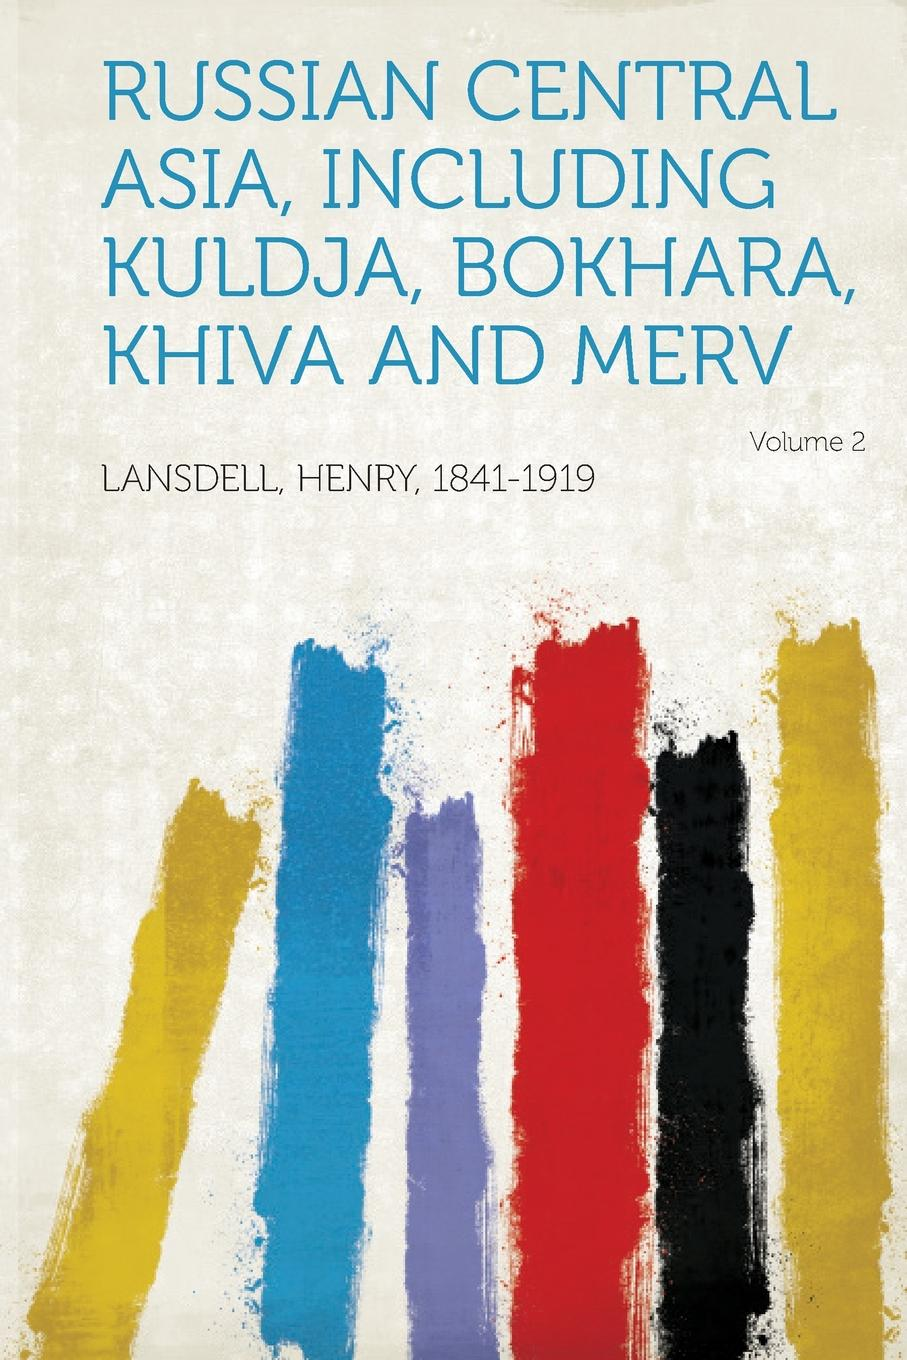 Russian Central Asia, Including Kuldja, Bokhara, Khiva and Merv Volume 2